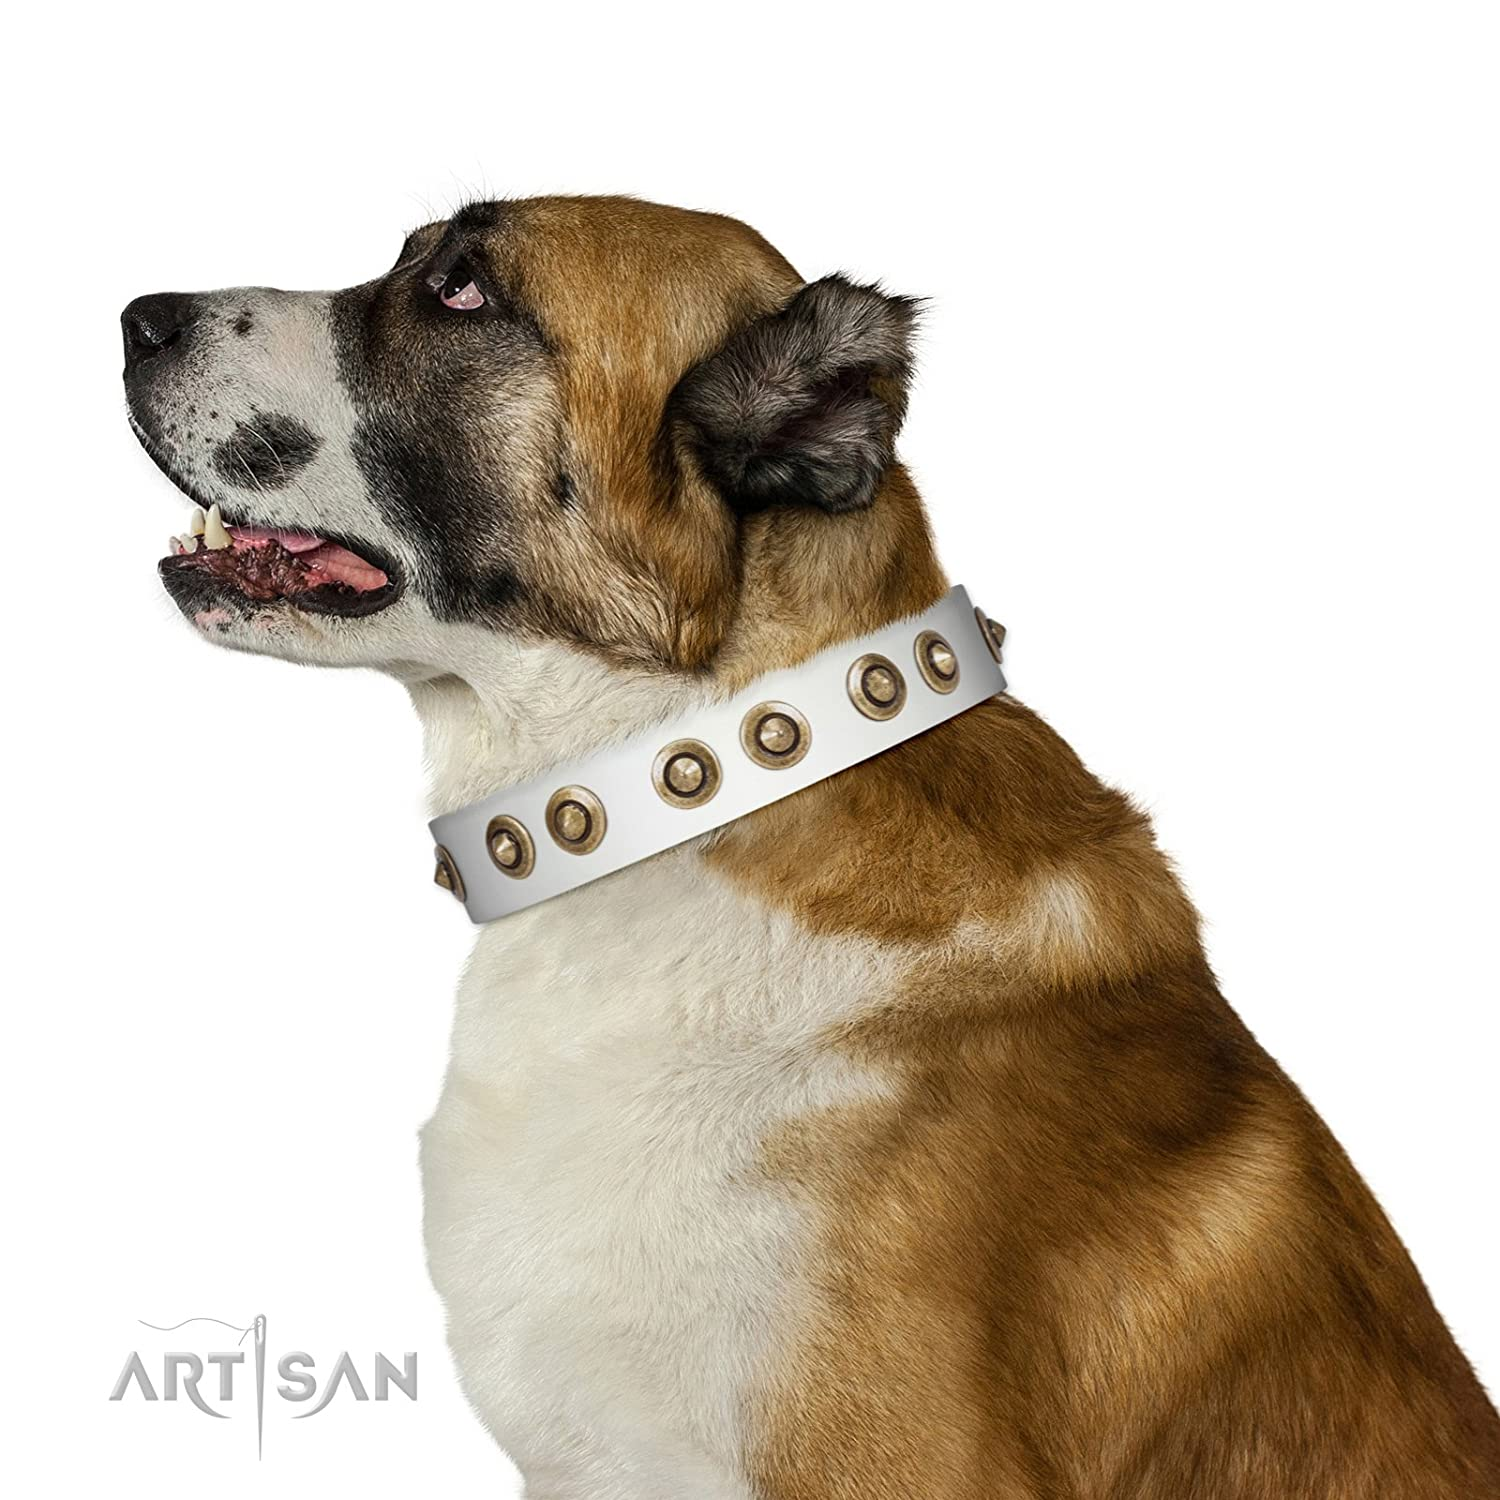 Fits for 36 inch (90cm) dog's neck size 36 inch White FDT Artisan Leather Dog Collar with Antique Decorations Moonlit Stroll 1 1 2 inch (40 cm) Wide Gift Box Included